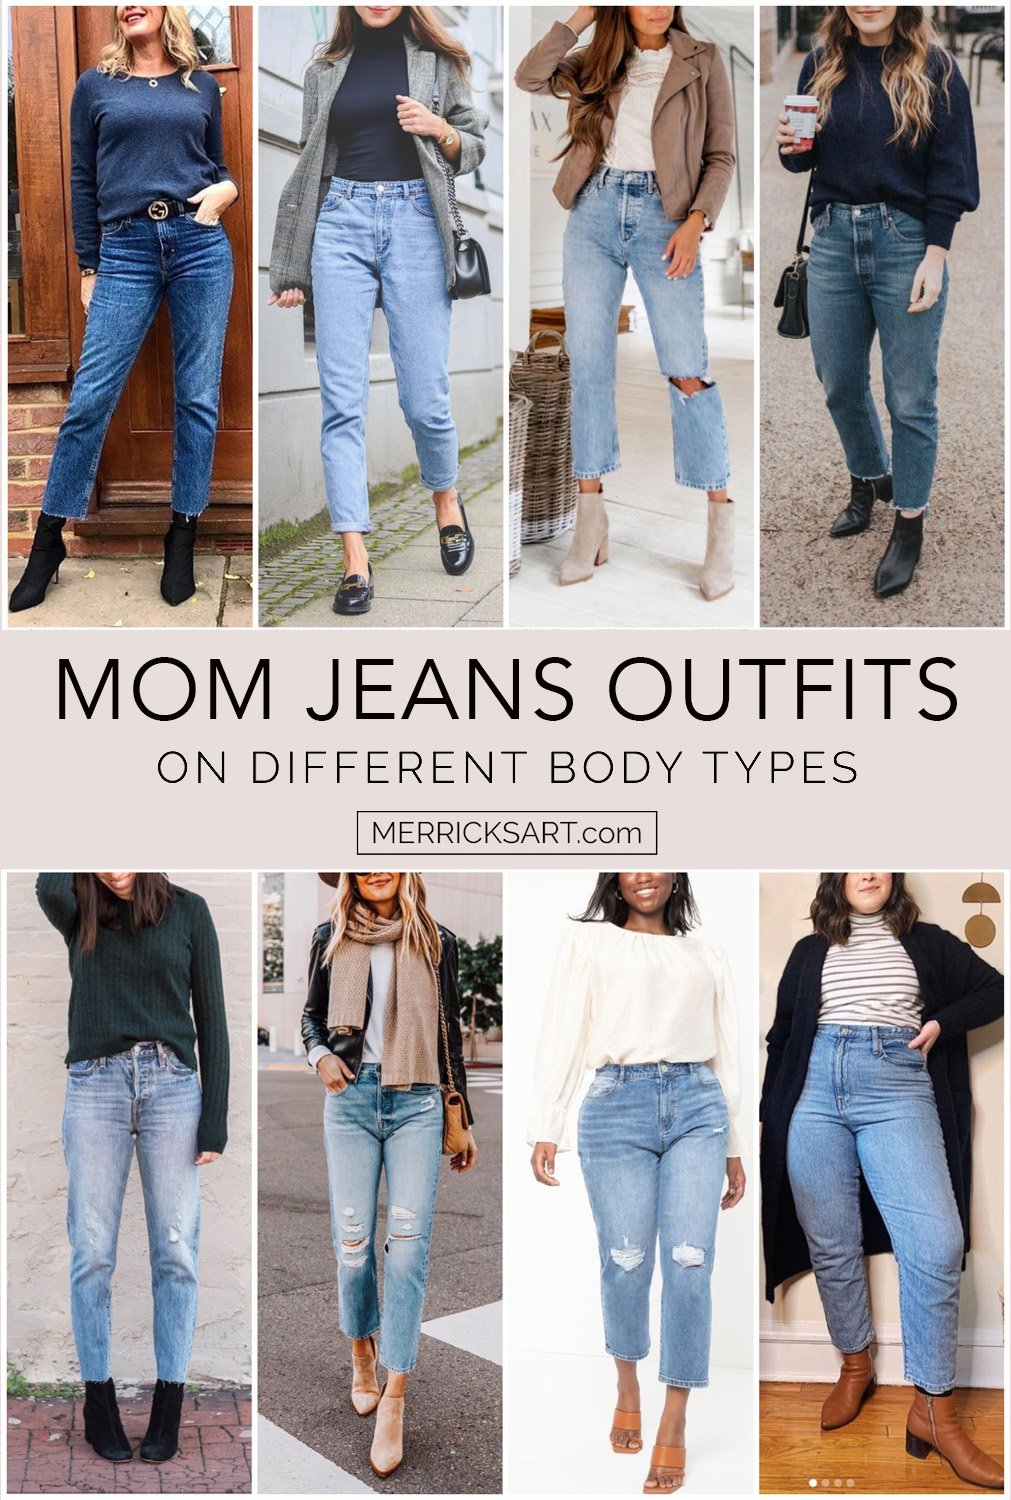 mom jeans outfits on other body types